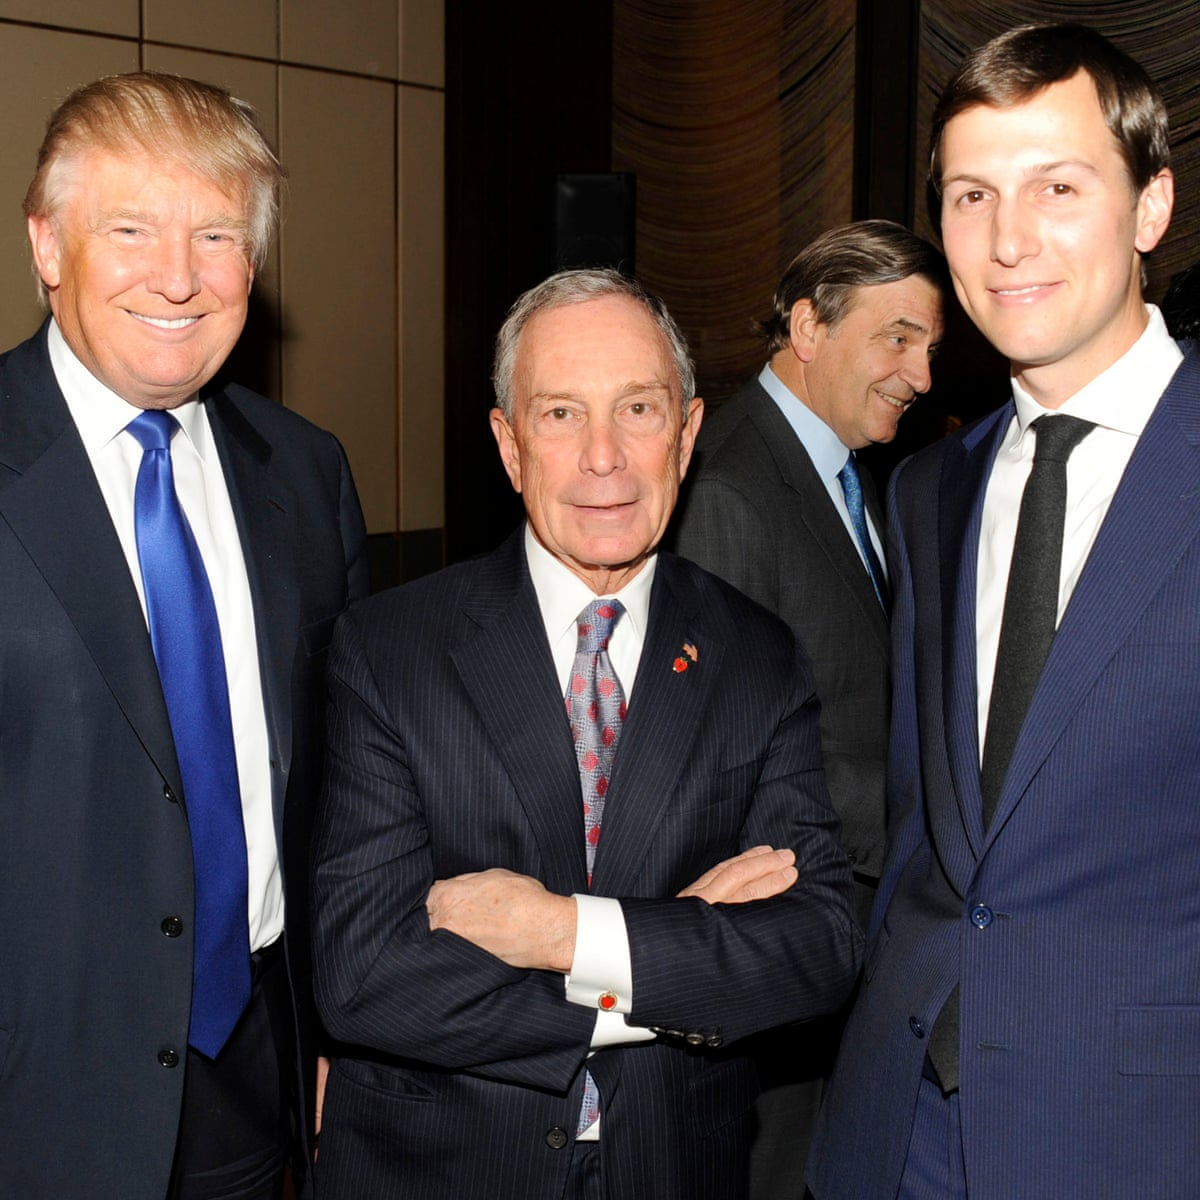 I Like Theater Dining And Chasing Women Mike Bloomberg In His Own Words Mike Bloomberg The Guardian